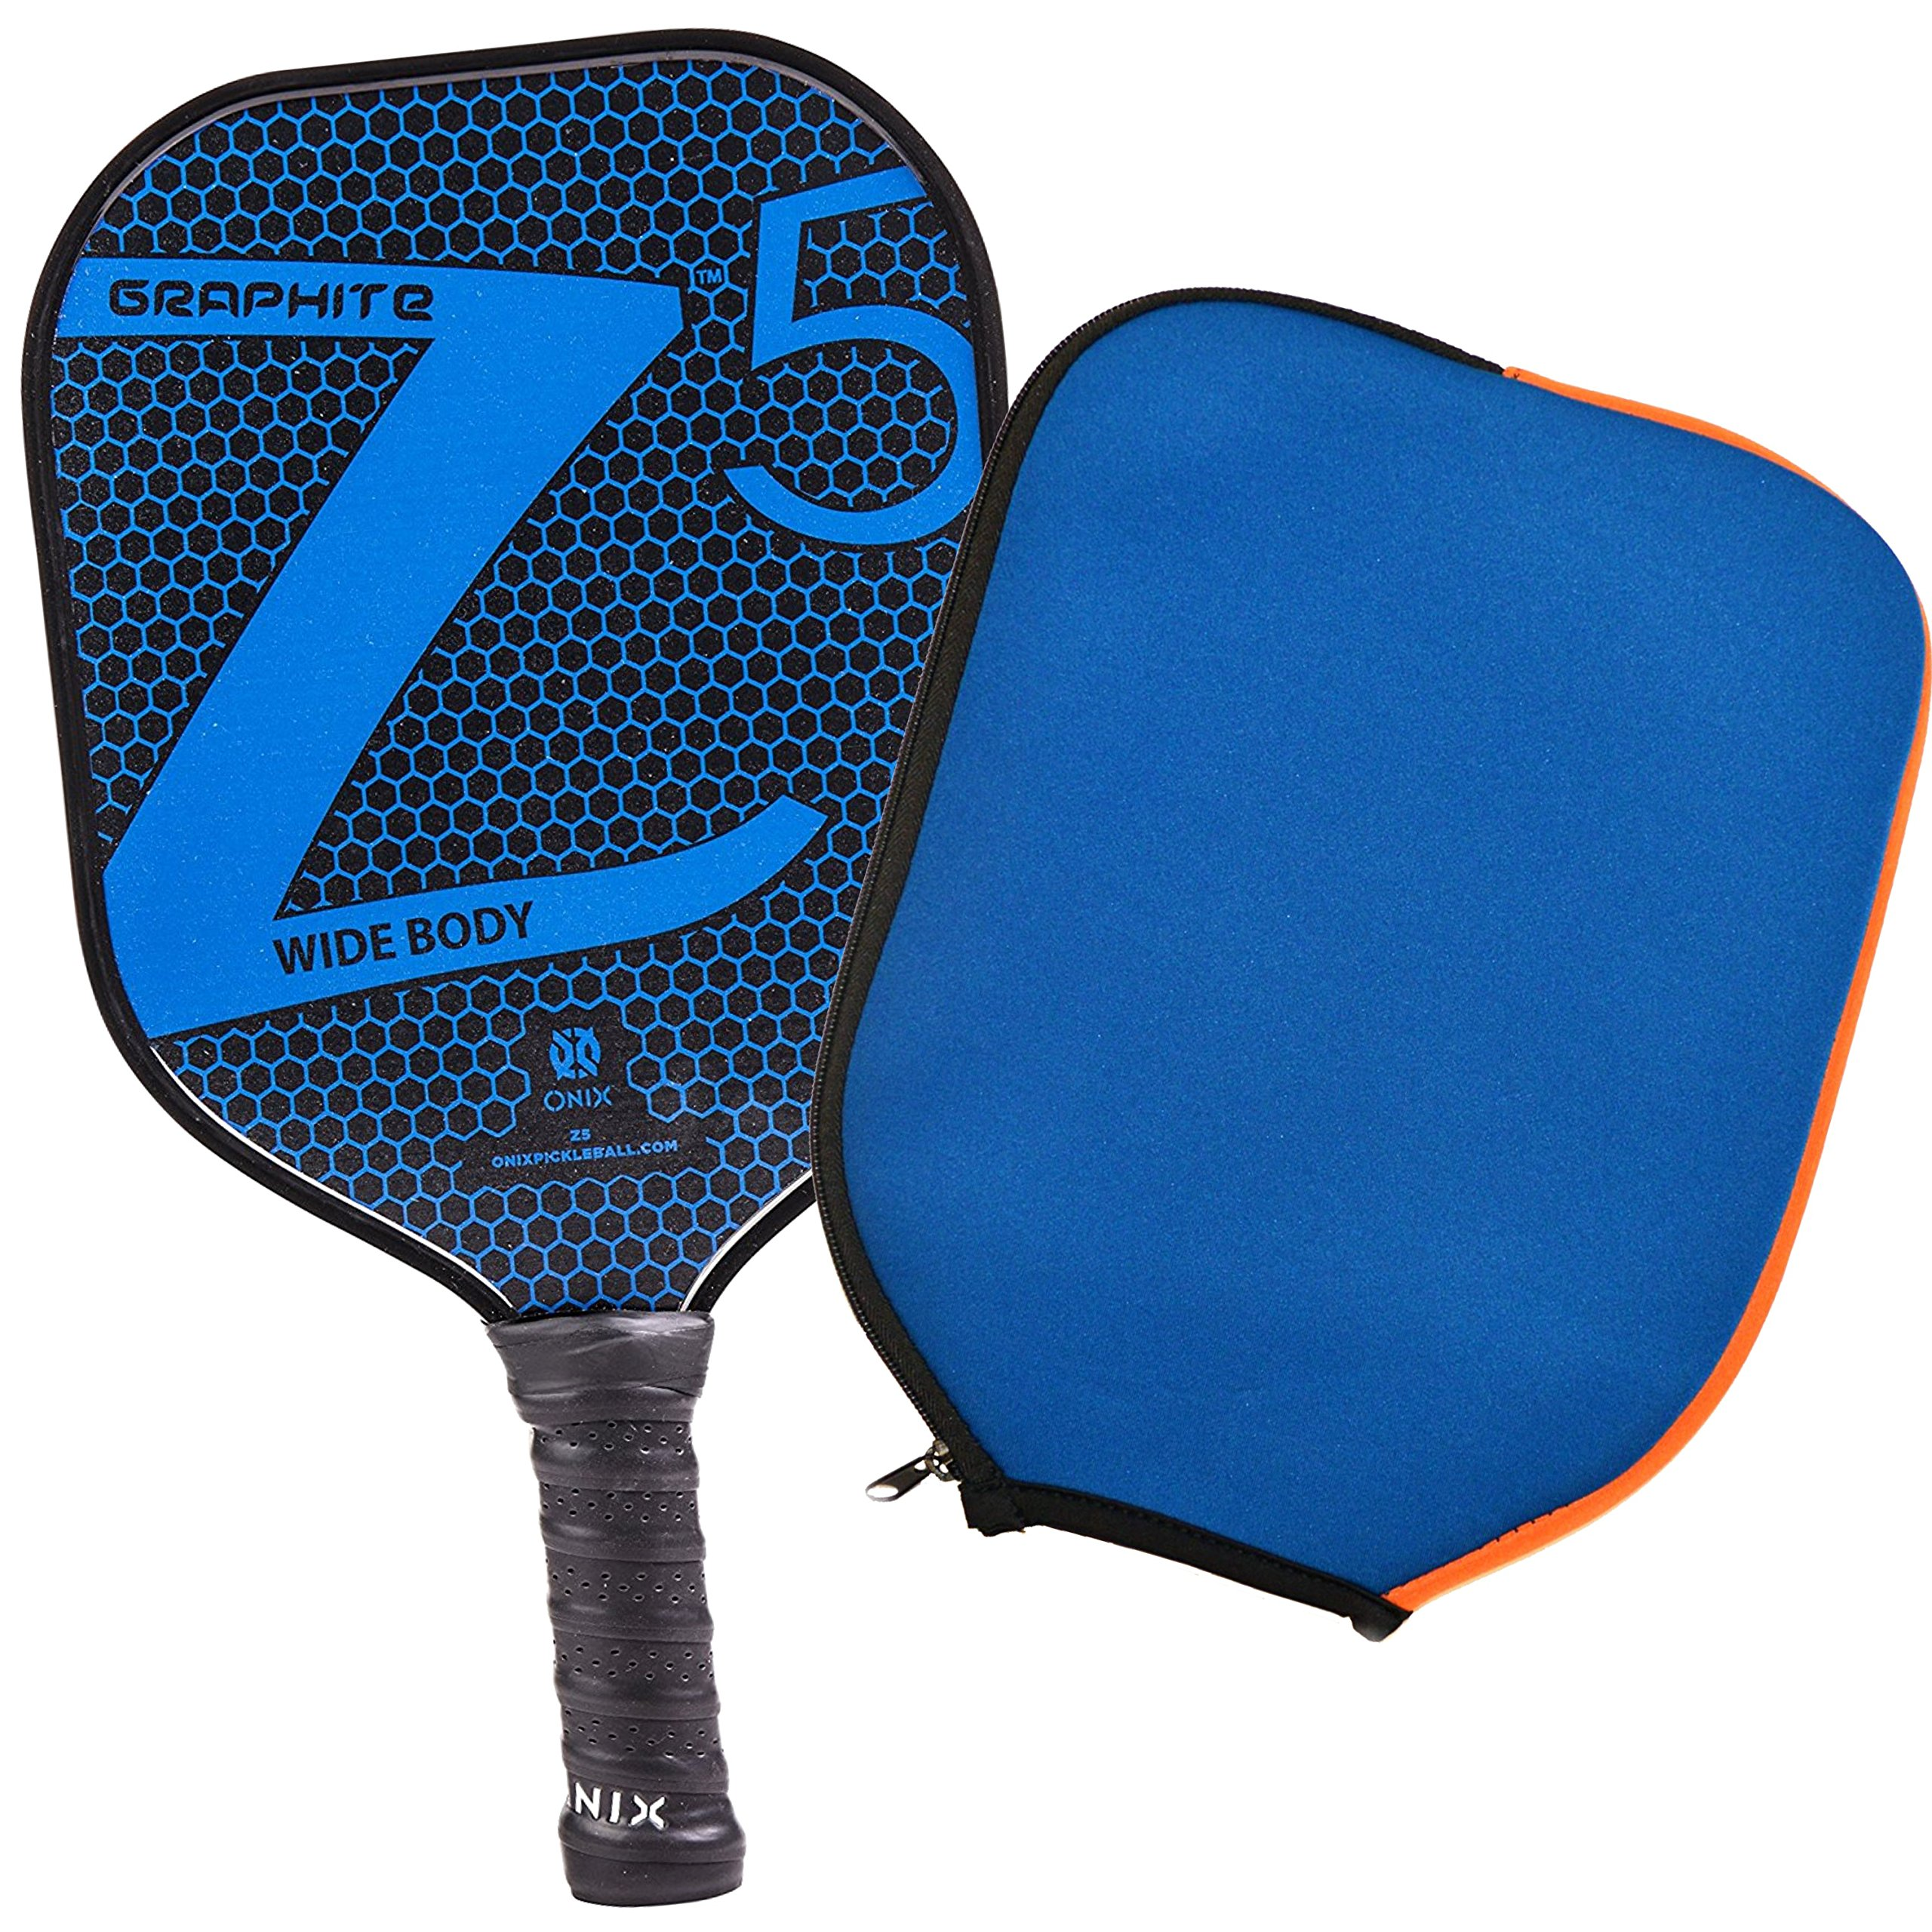 Onix Z5 Graphite Pickleball Paddle and Paddle Cover (Blue) || Gift Pack